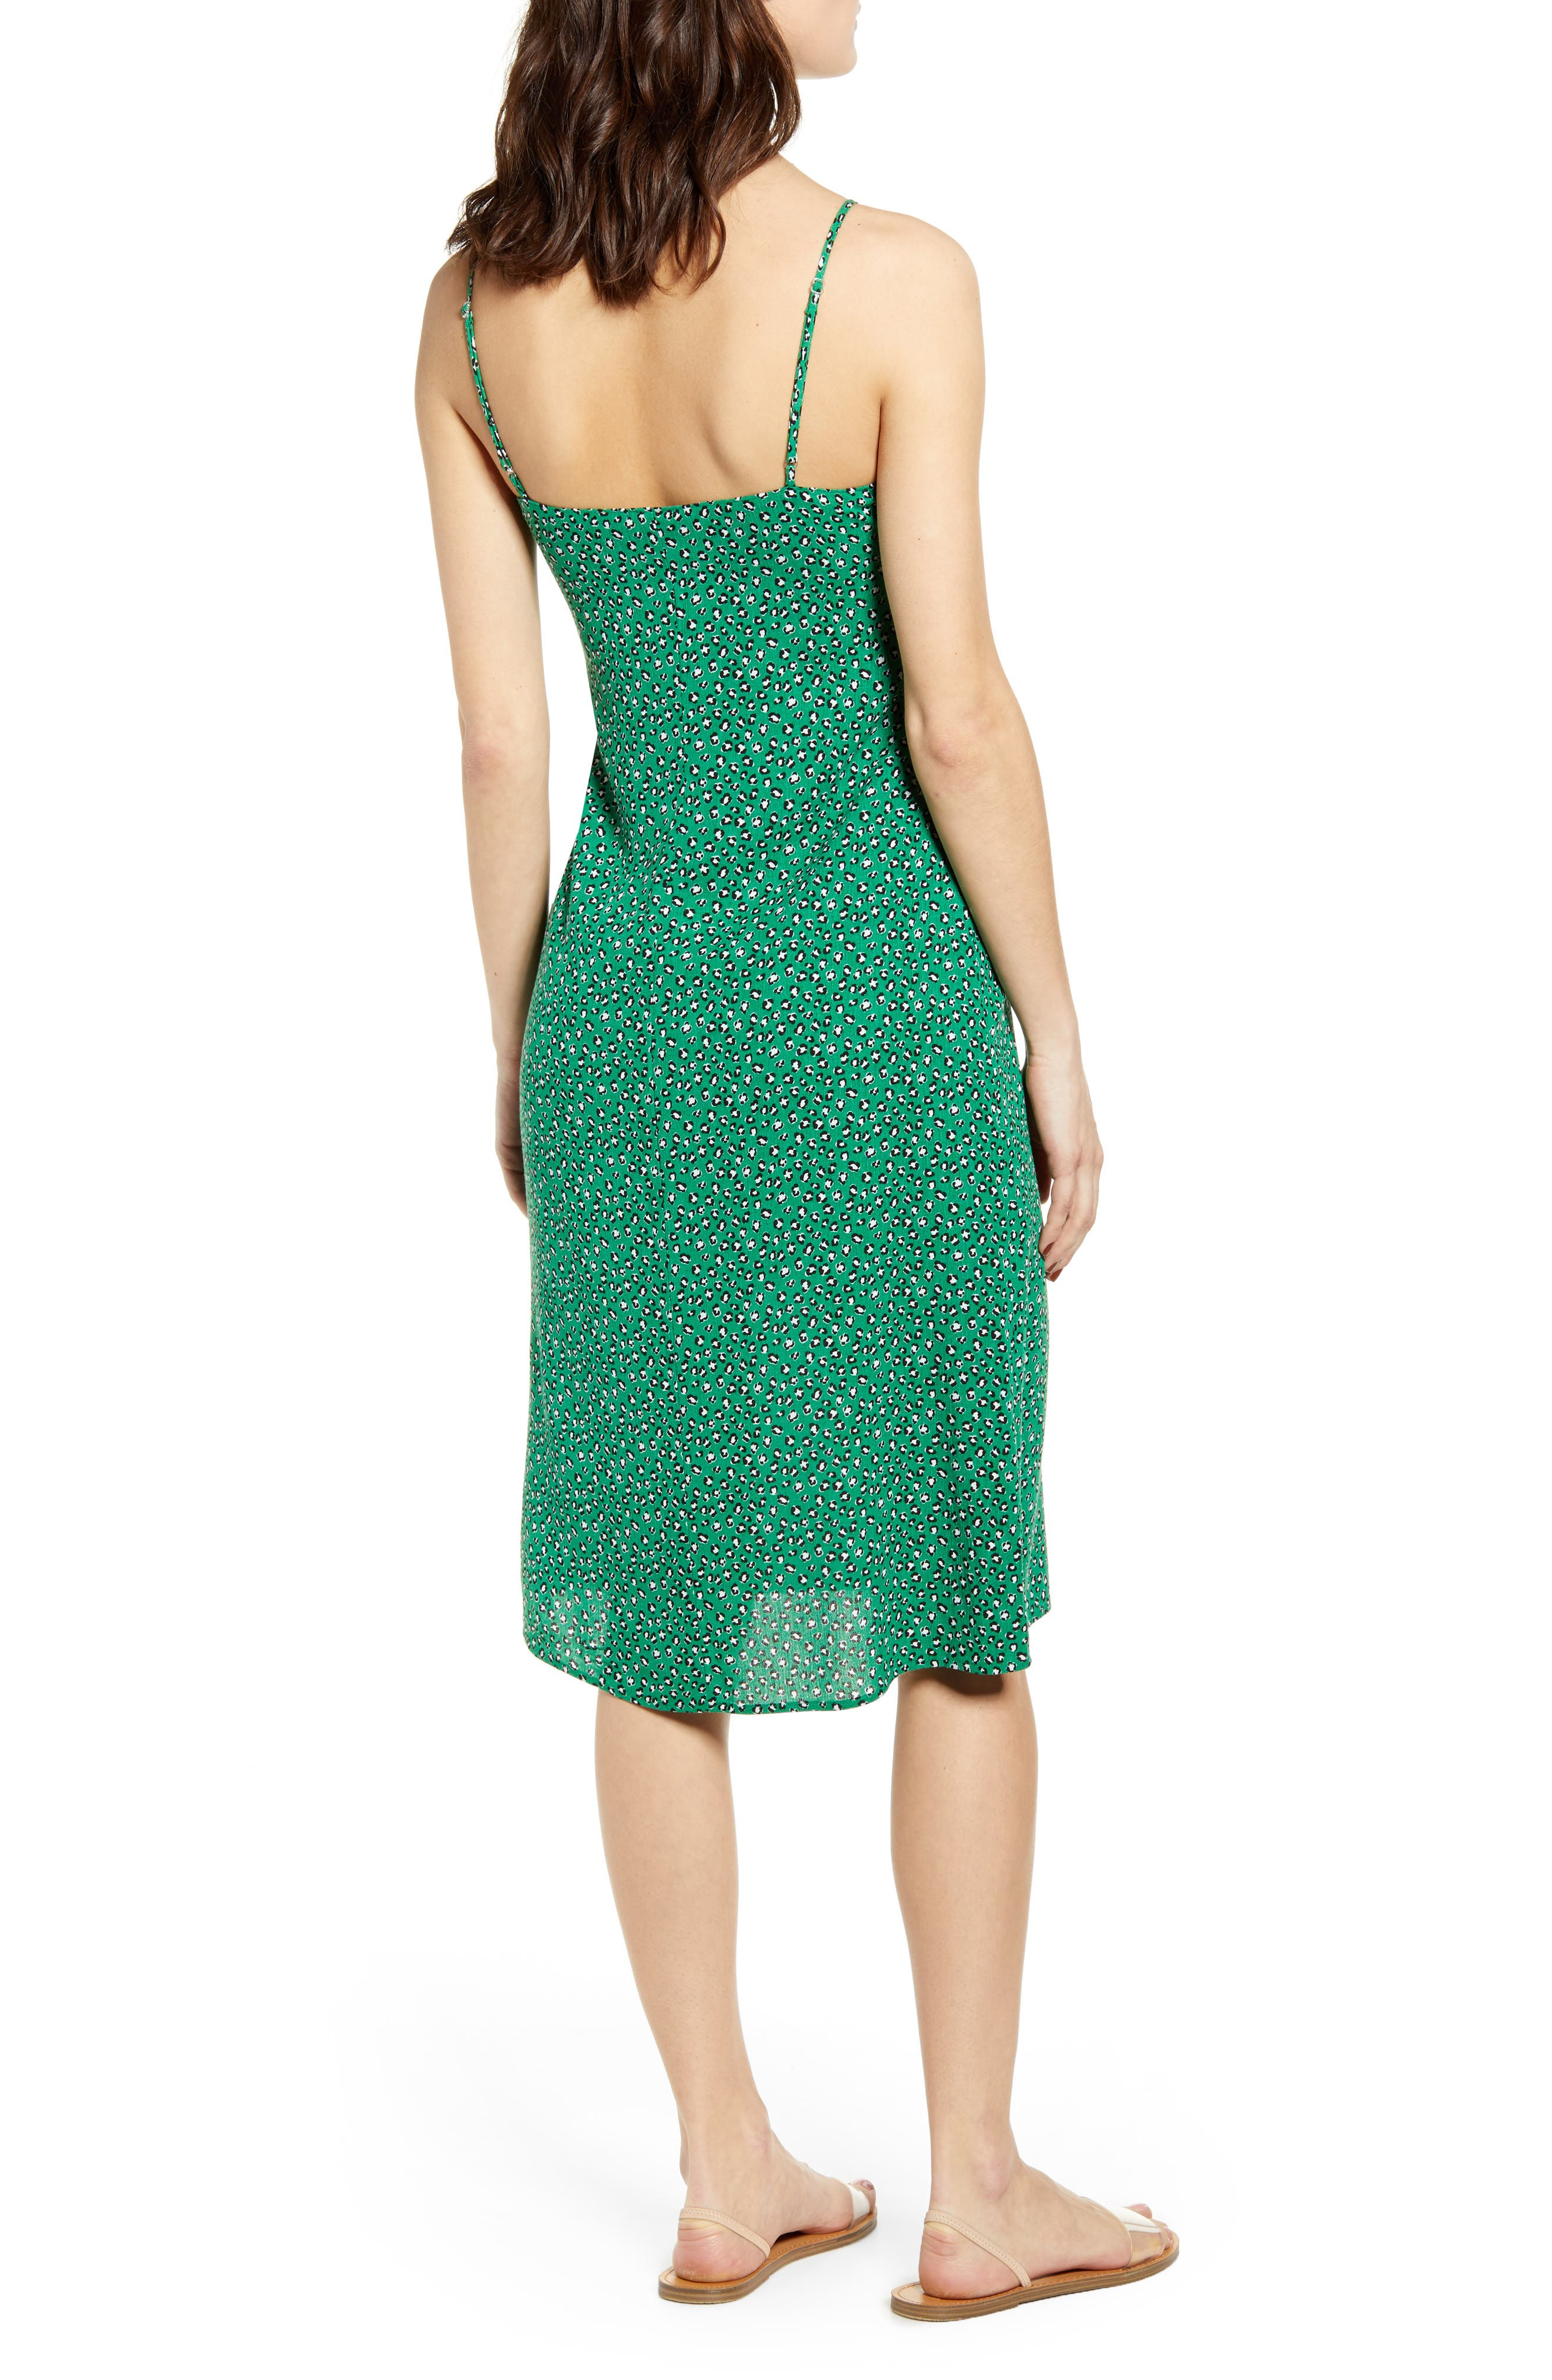 cdadf543894 Women's One Clothing Dresses | Nordstrom